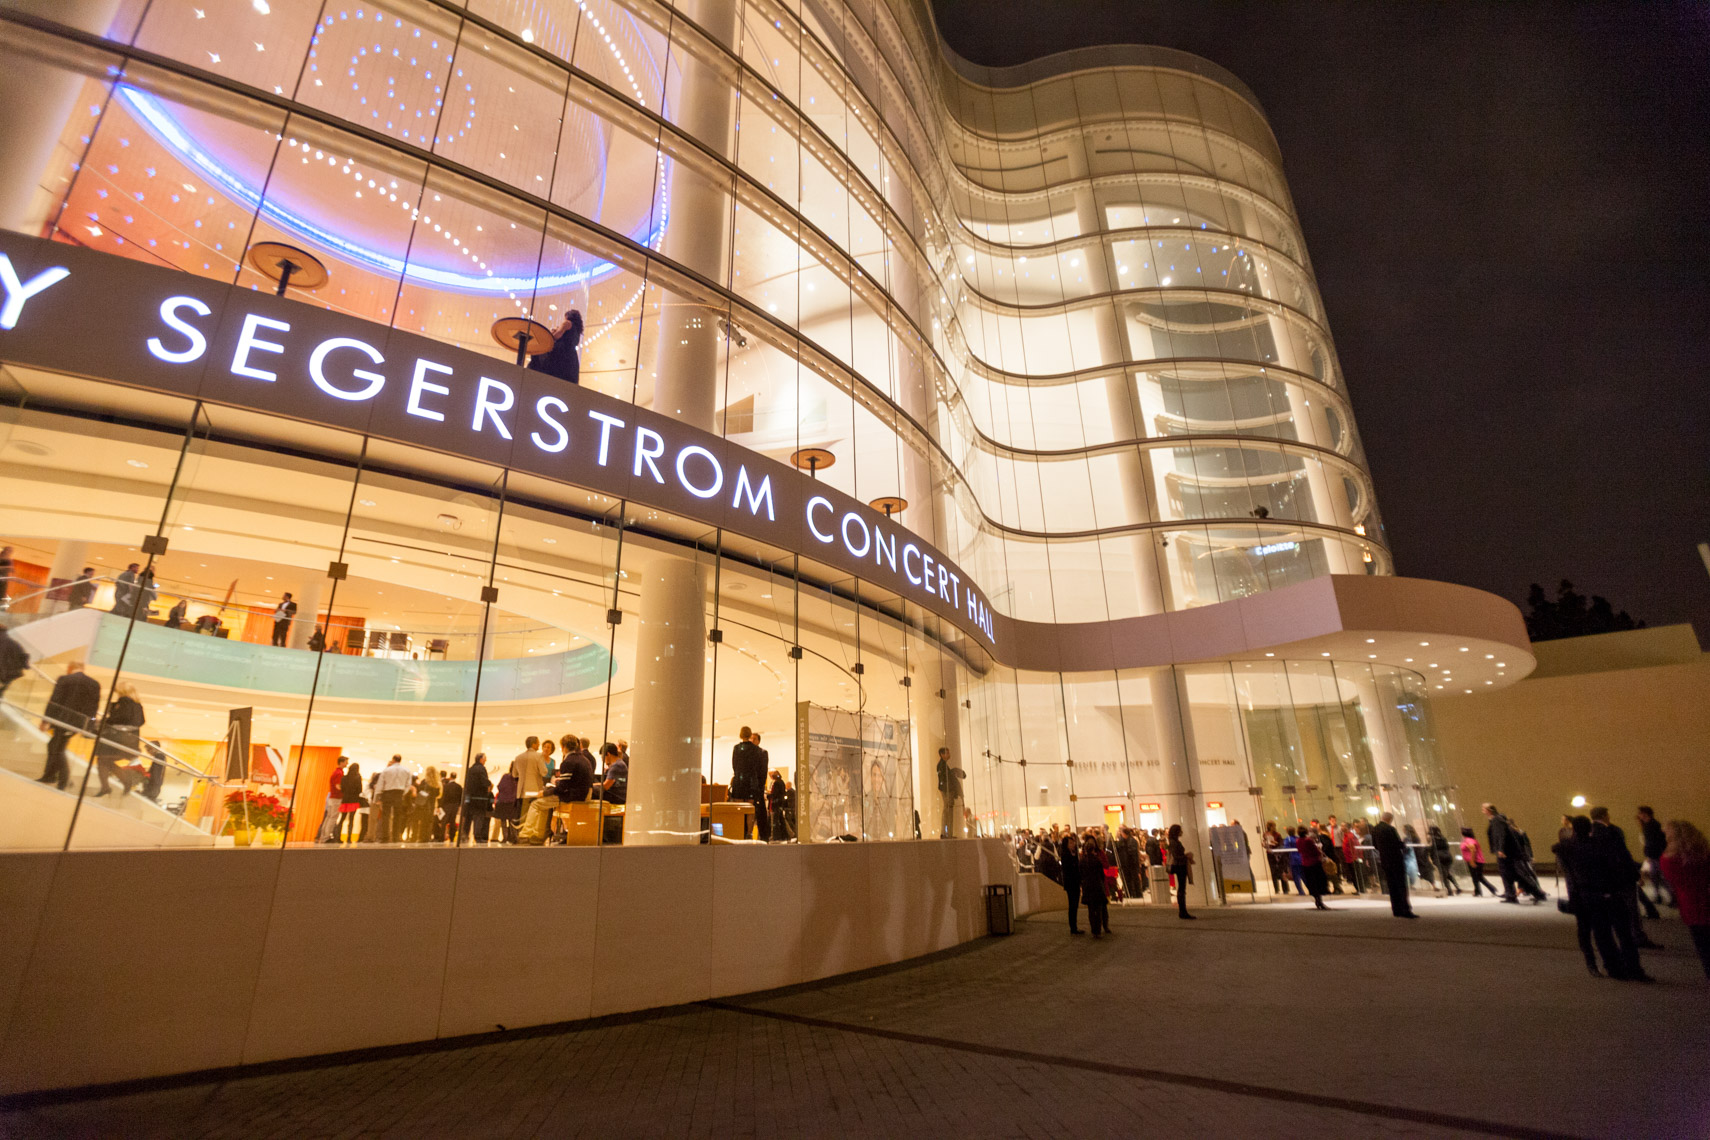 32-Higher-Education-Segerstrom-Concert-Hall